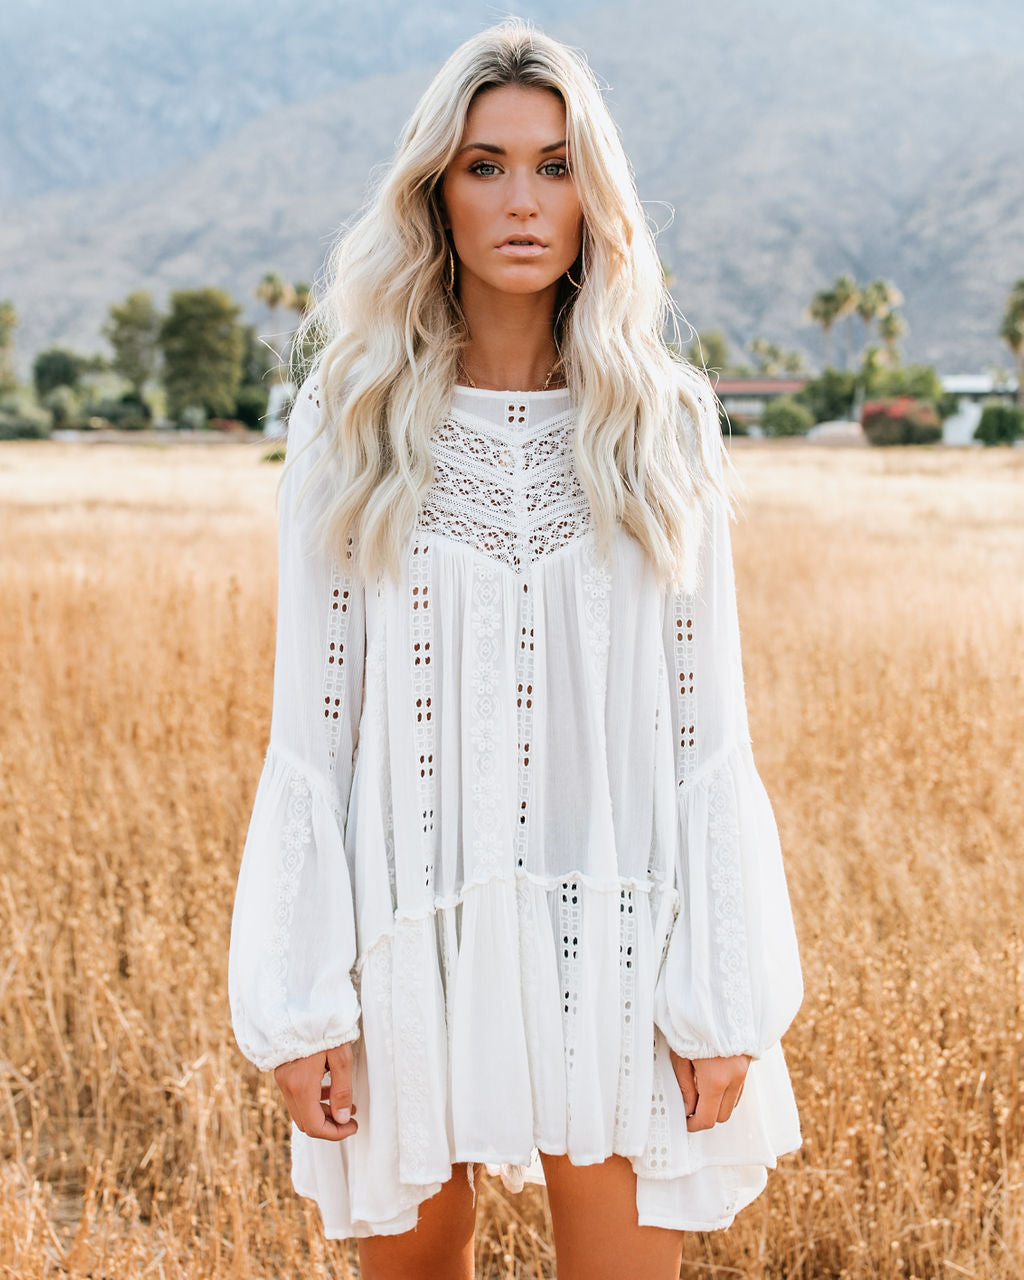 1aeaf44cc3d Kiss Kiss Embroidered Lace Tunic - Ivory - FREE PEOPLE – VICI